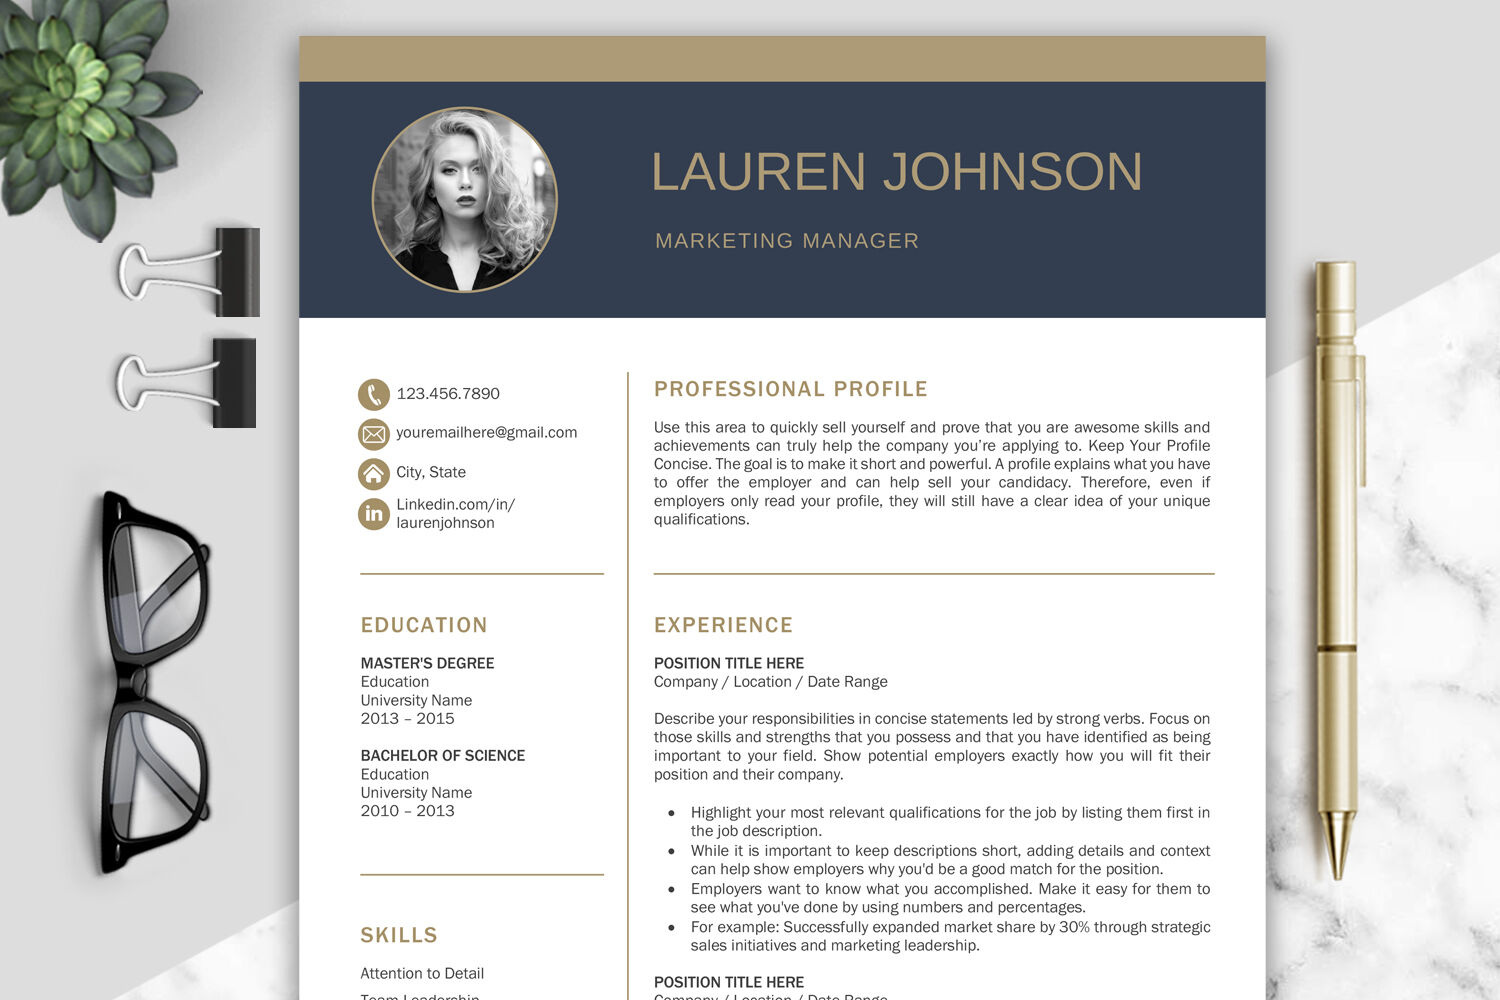 Resume Template Cv Template Lebenslauf Creative Resume By Prographicdesign Thehungryjpeg Com